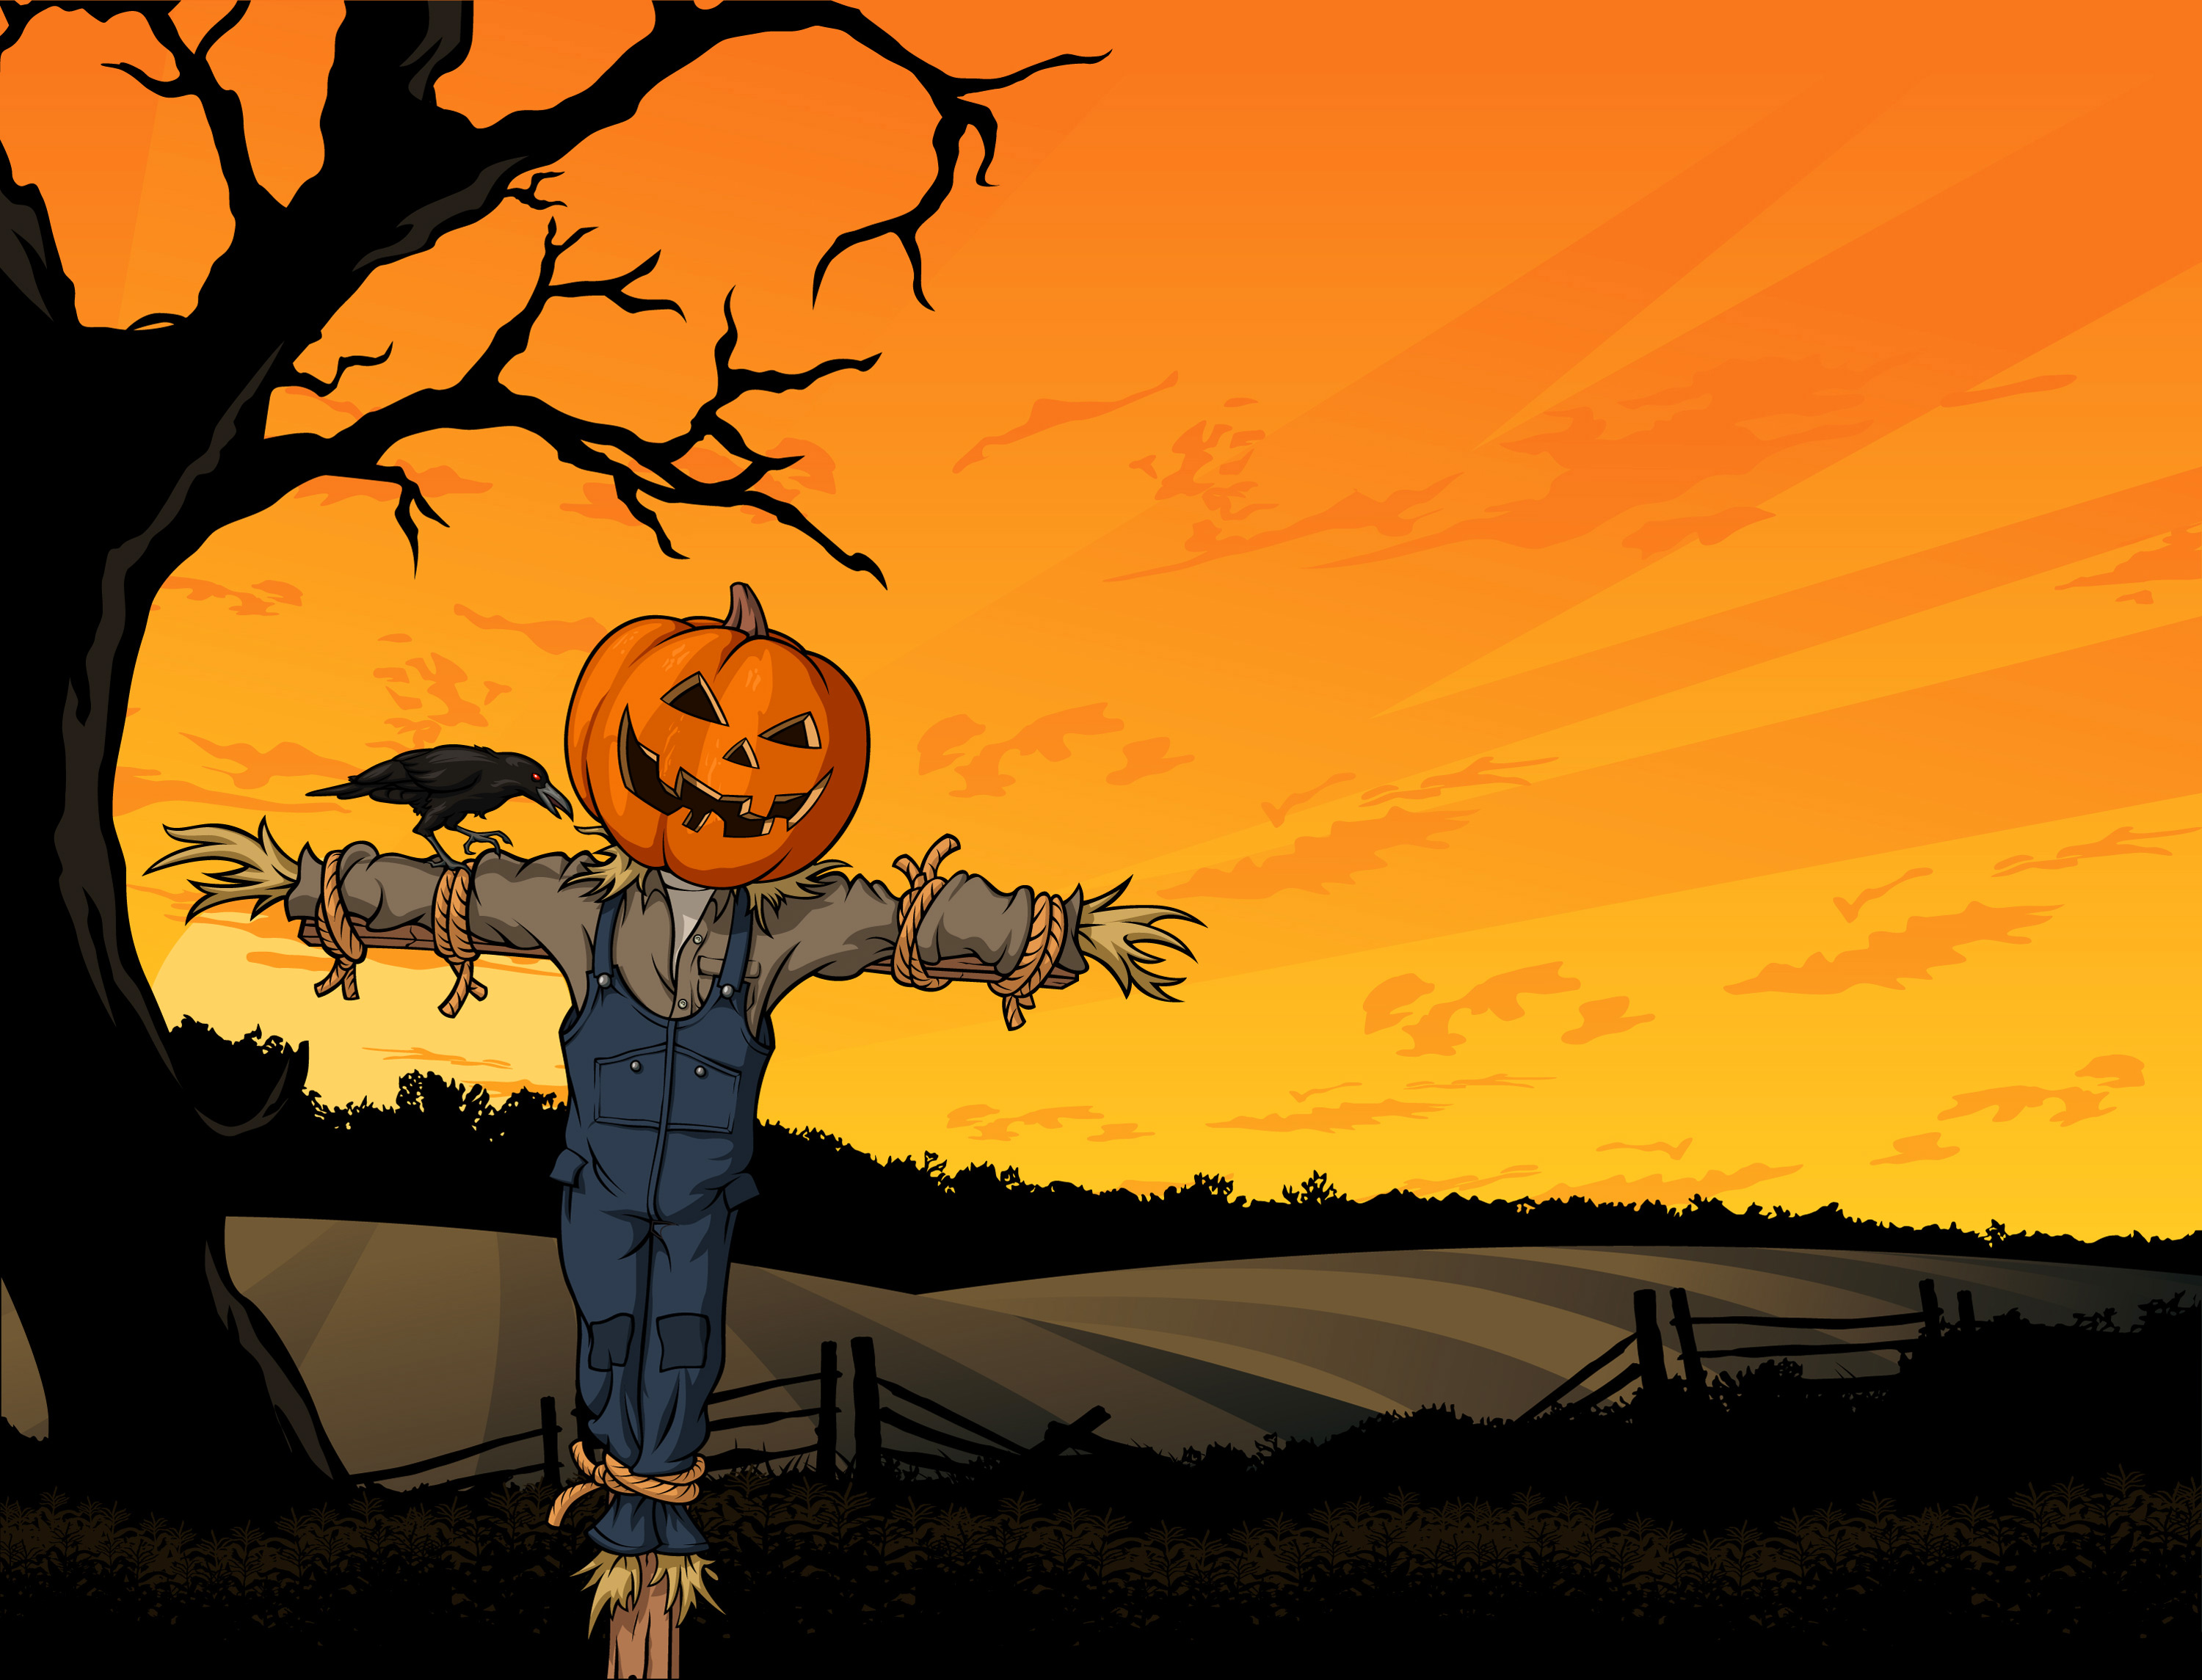 Scarecrows And Pumpkins Png - Pumpkin Scarecrow | Gallery Yopriceville - High-Quality Images ...